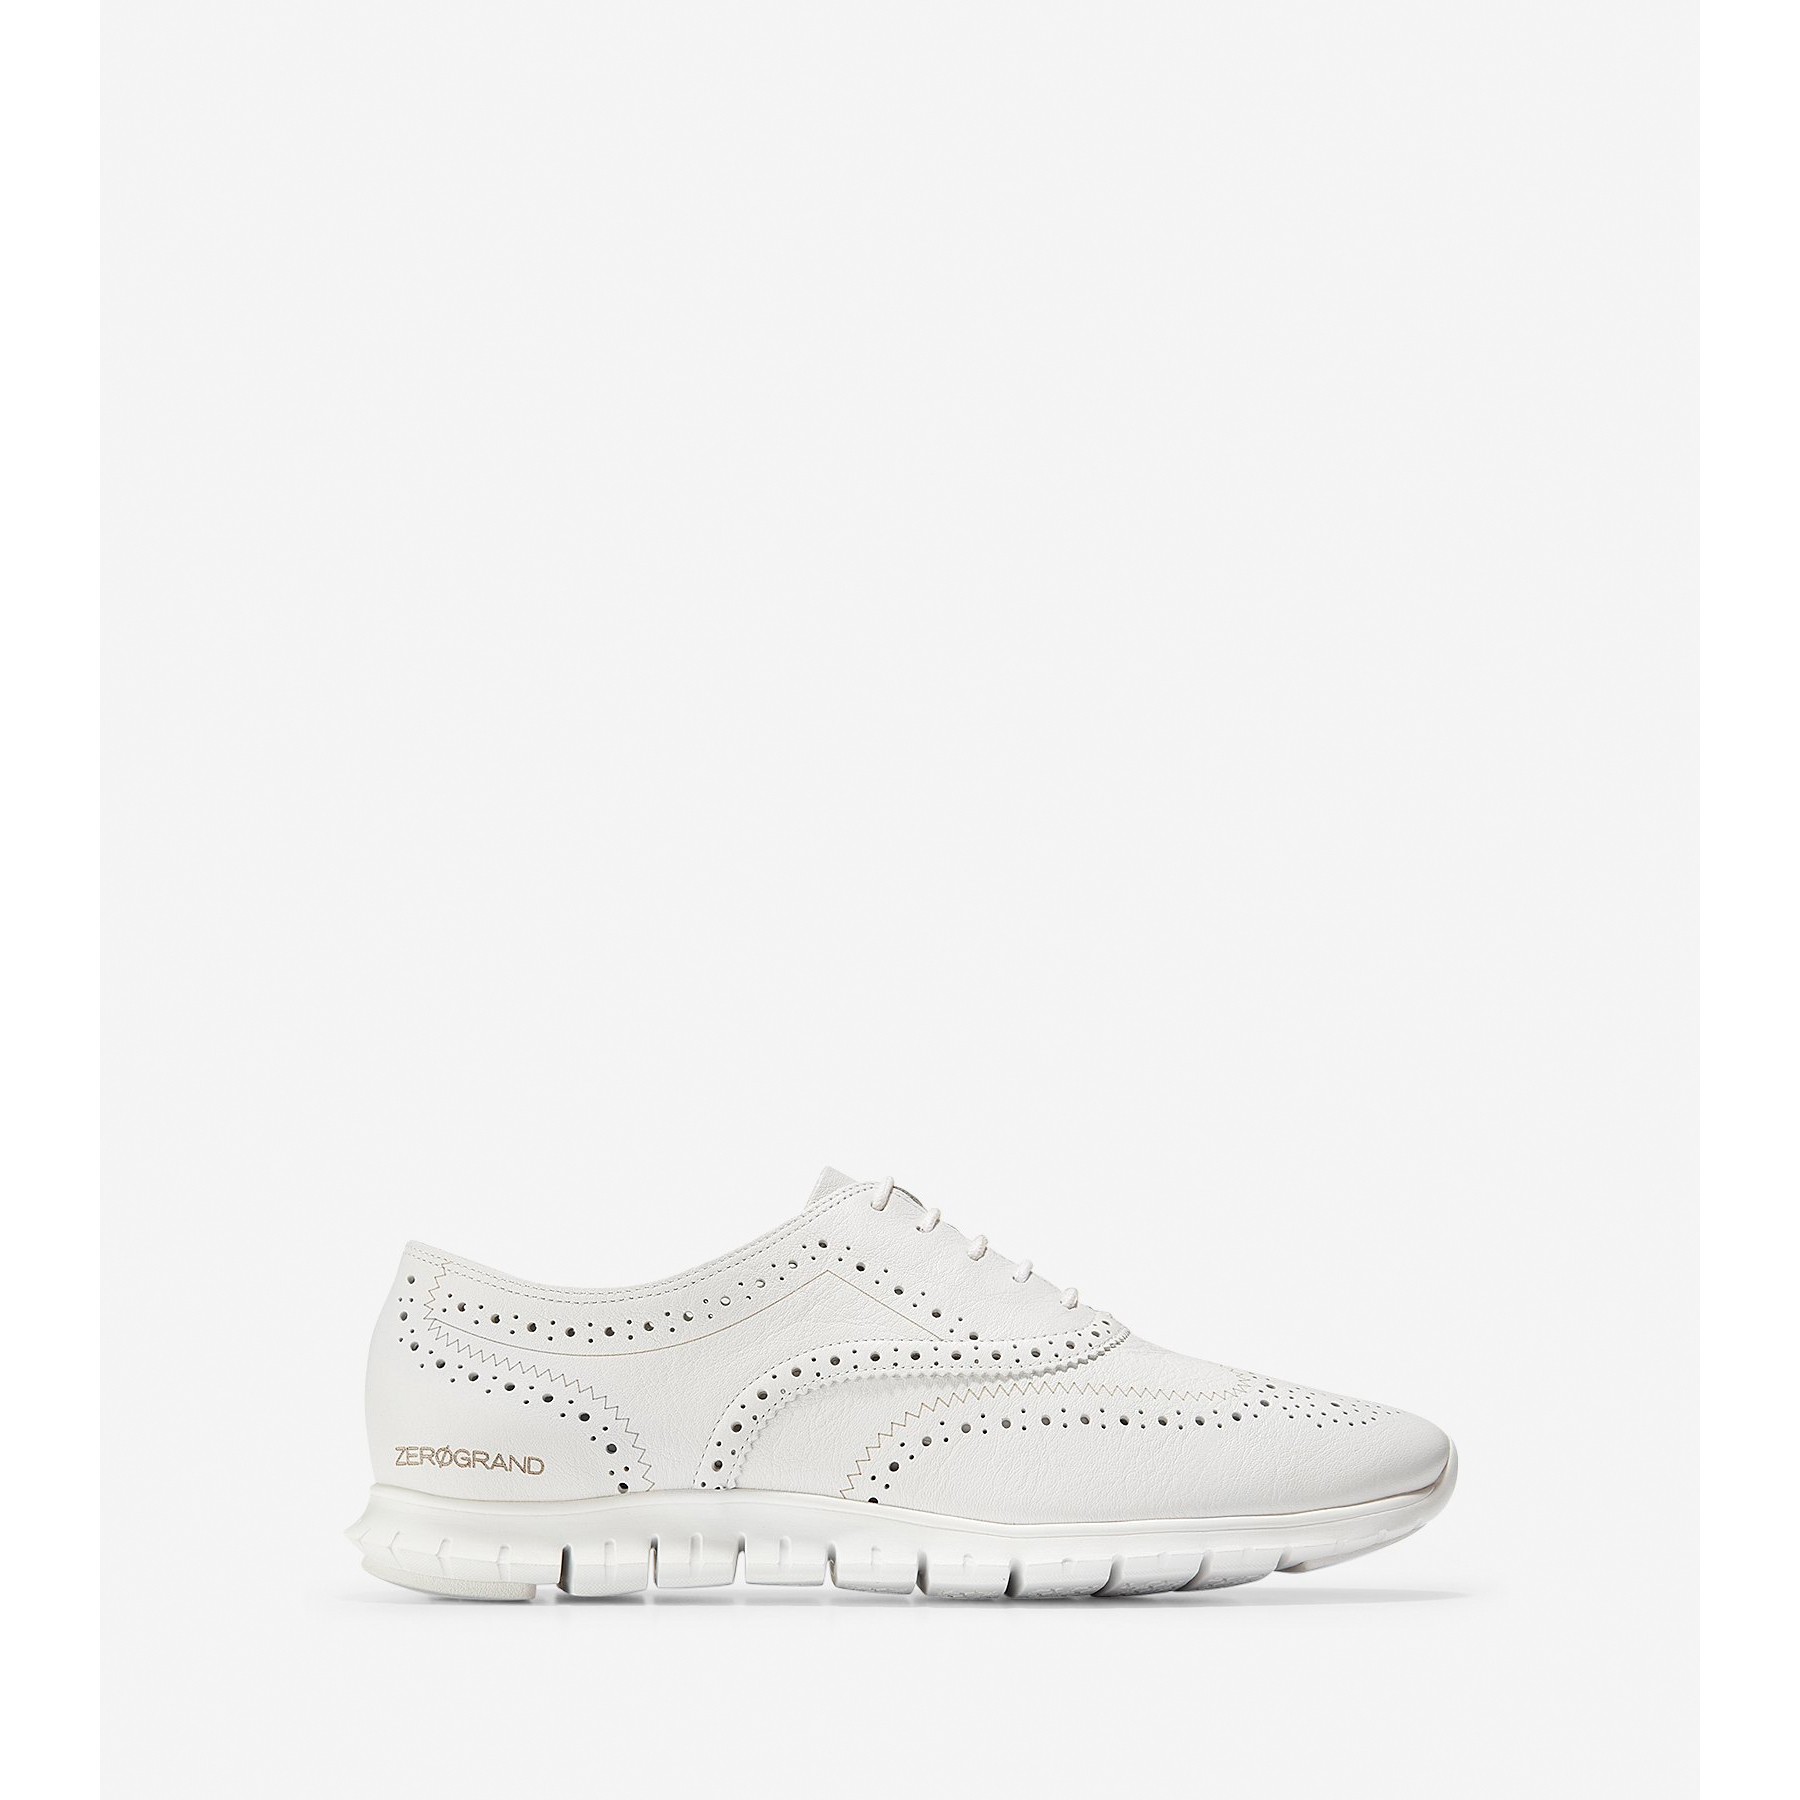 Solstice Blancs Bas Diesel Chaussures De Sport-clad BnGsrQXDhW